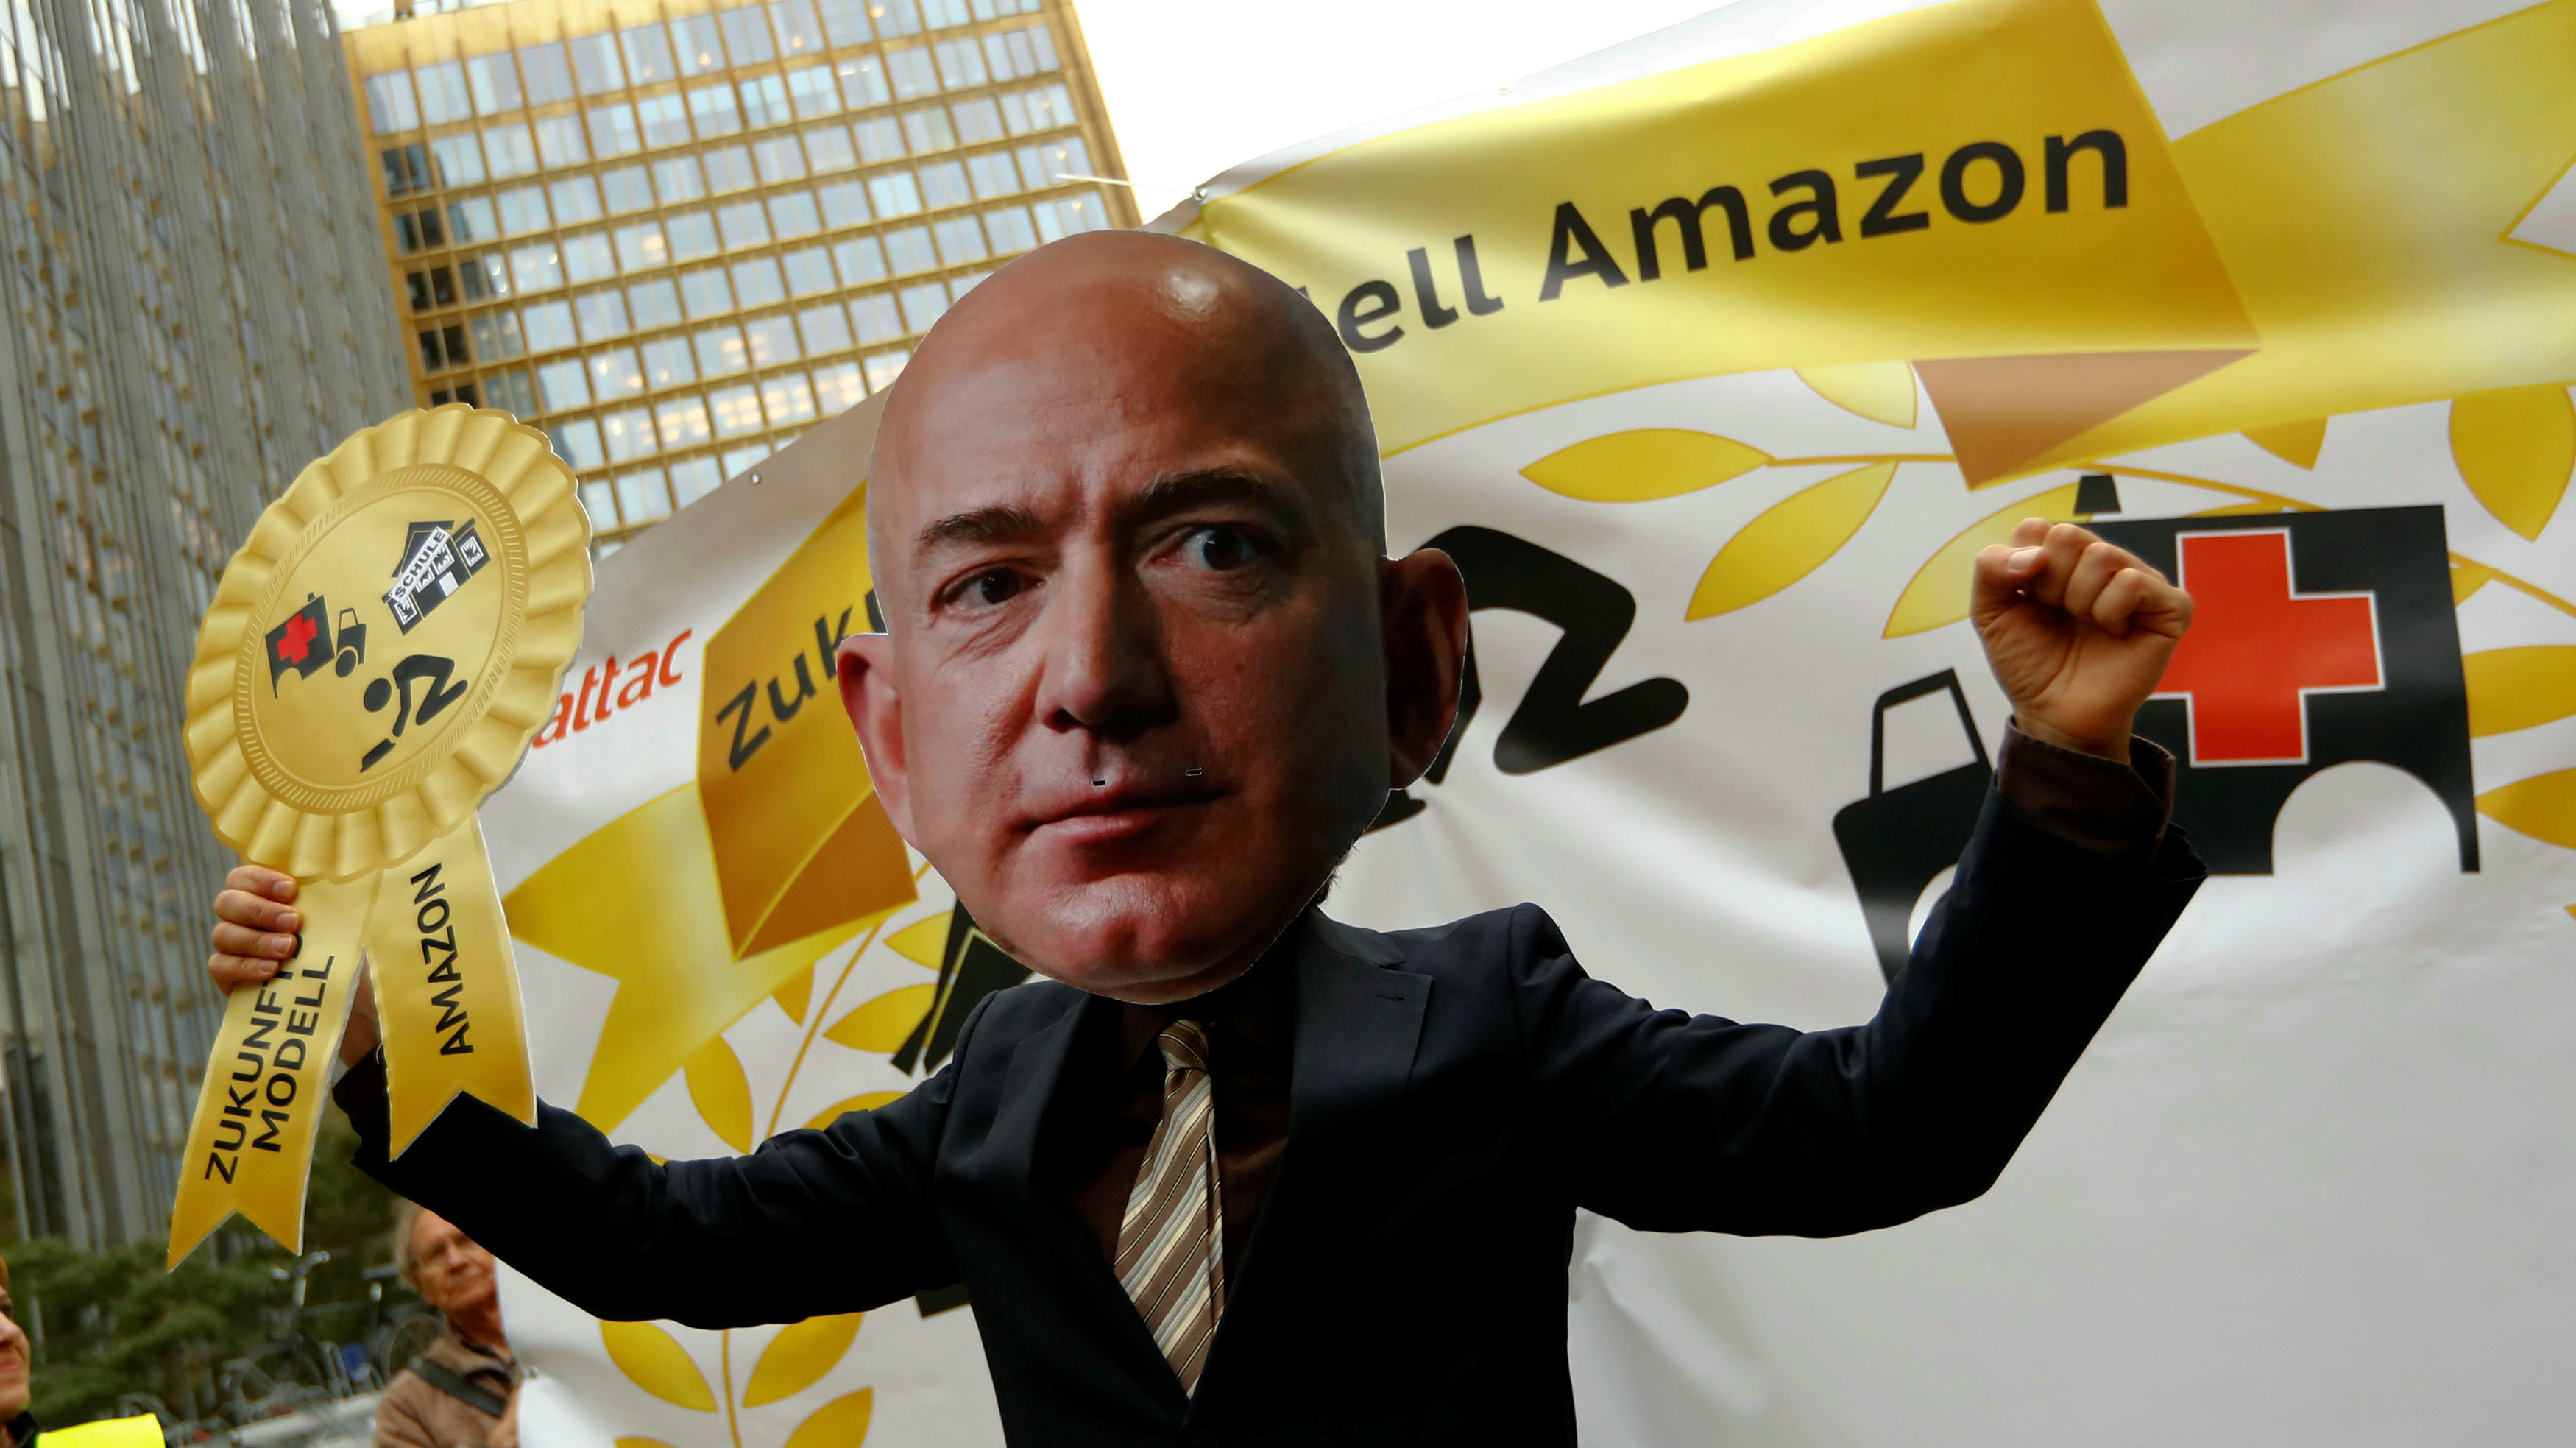 Amazon up 7% following earnings beat